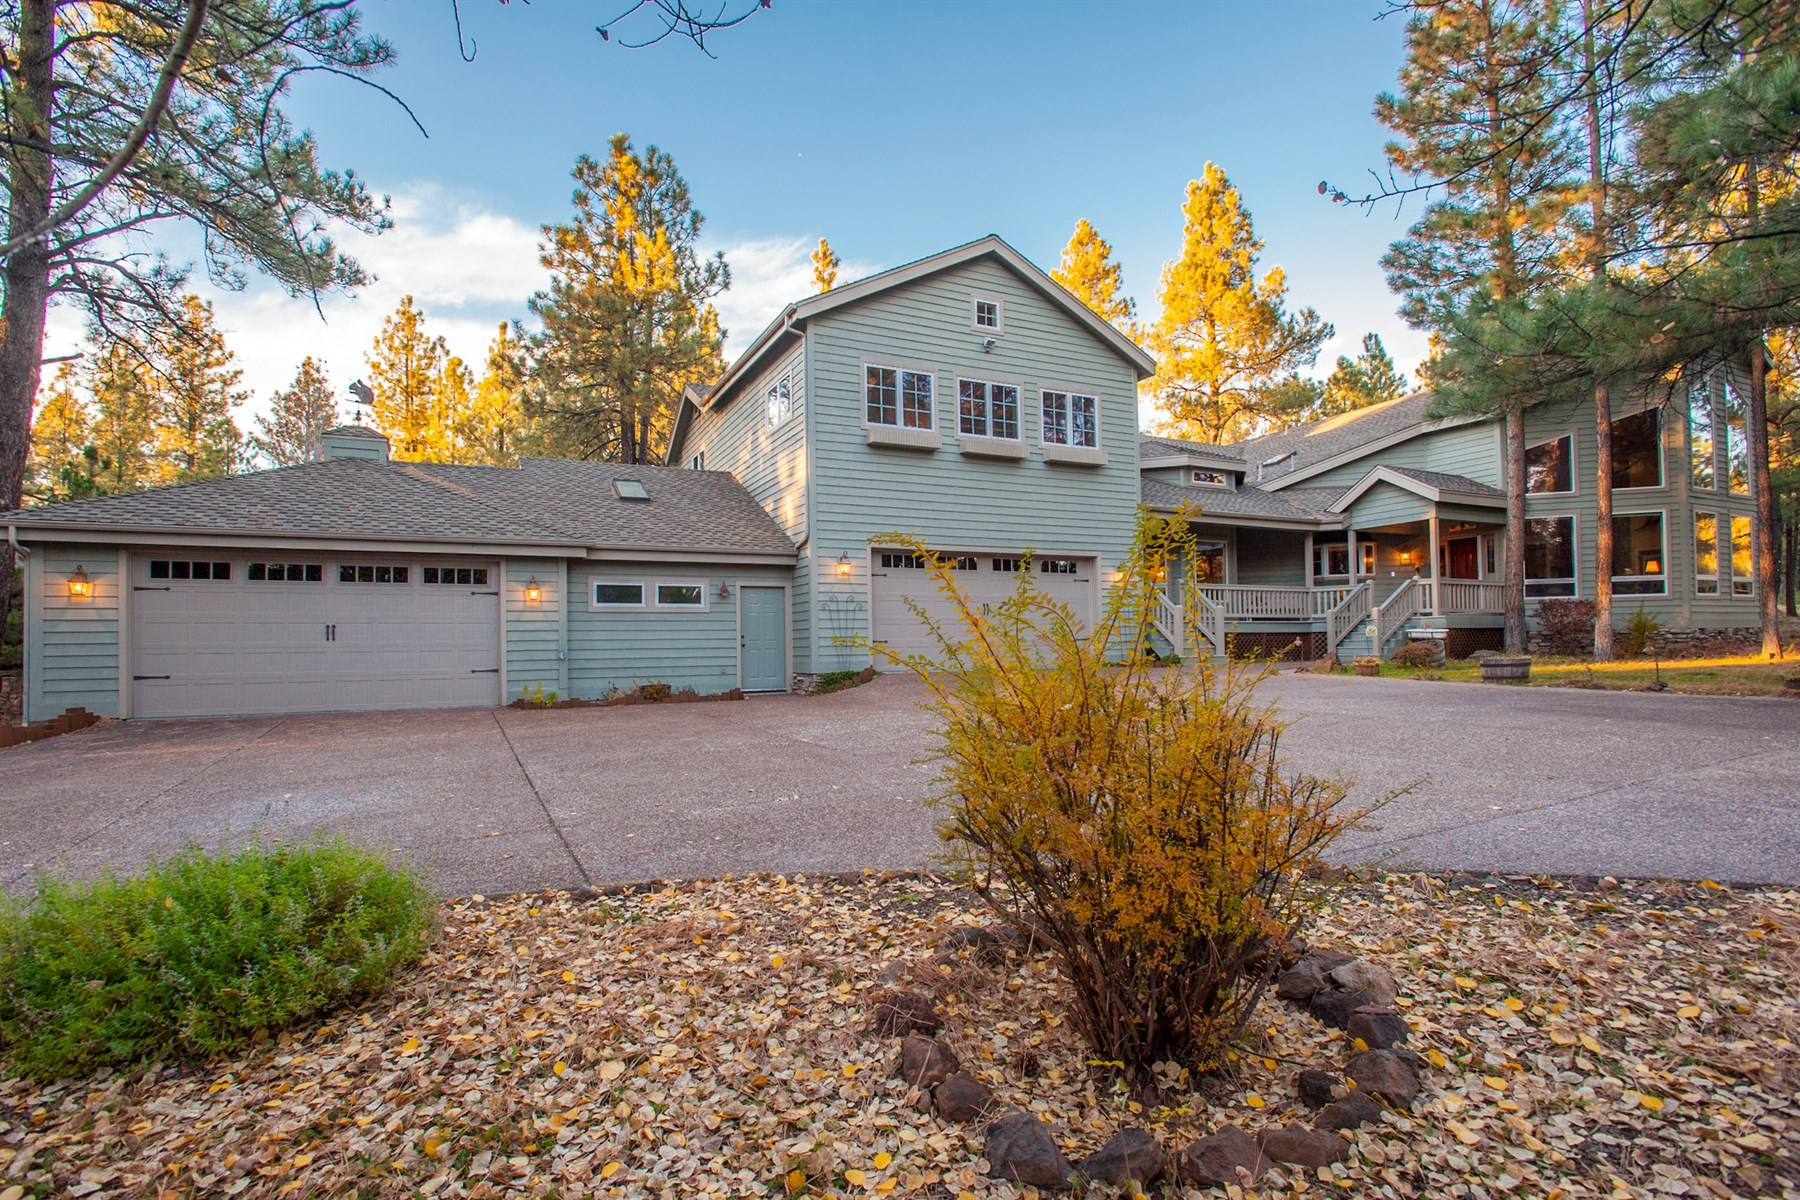 Single Family Home for Sale at Outstanding Purchase or Trade Opportunity for a Property in the Phoenix. 2489 E Eva CIR Flagstaff, Arizona 86001 United States